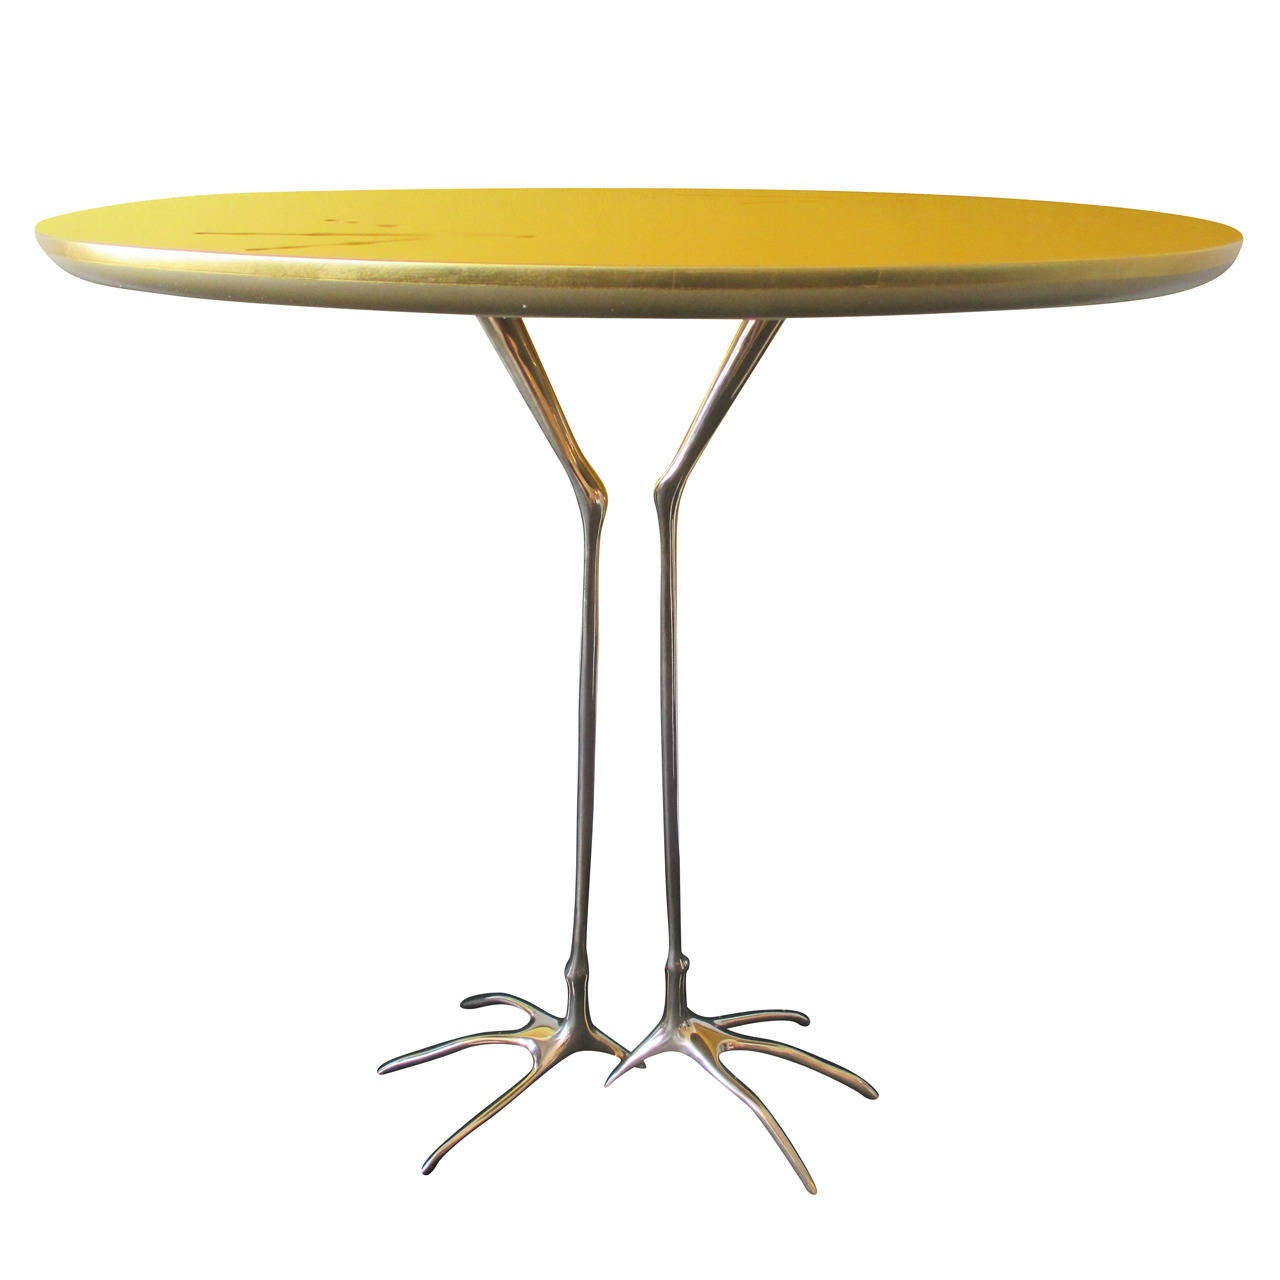 Small table gold leafed w brass legs by meret oppenheim at for Short table legs